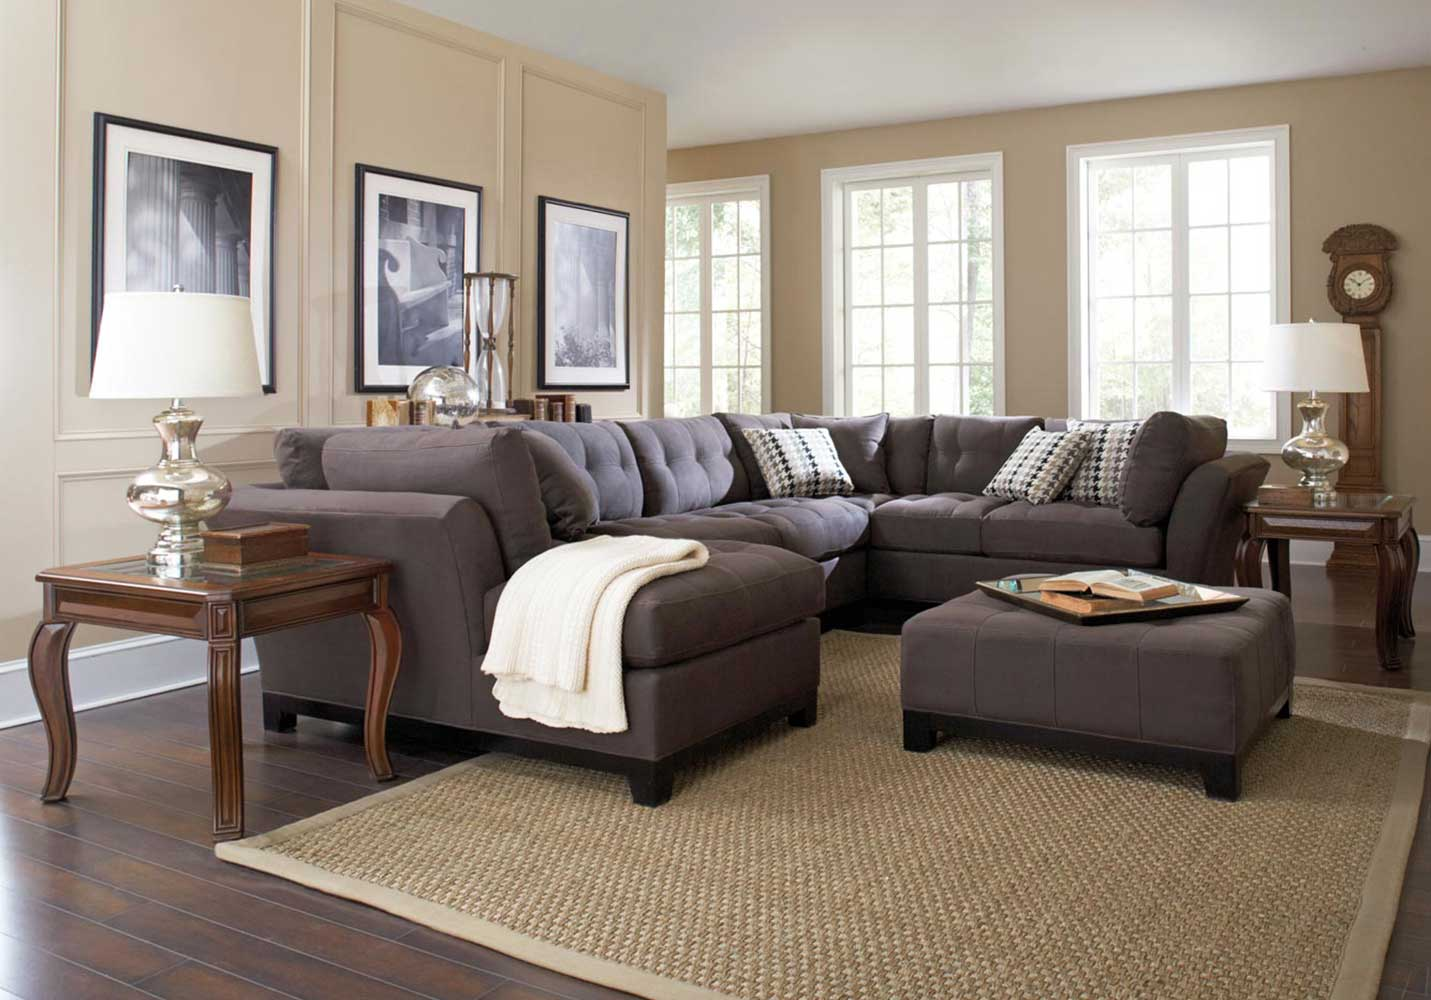 Furniture For Living Rooms: American Furniture Warehouse